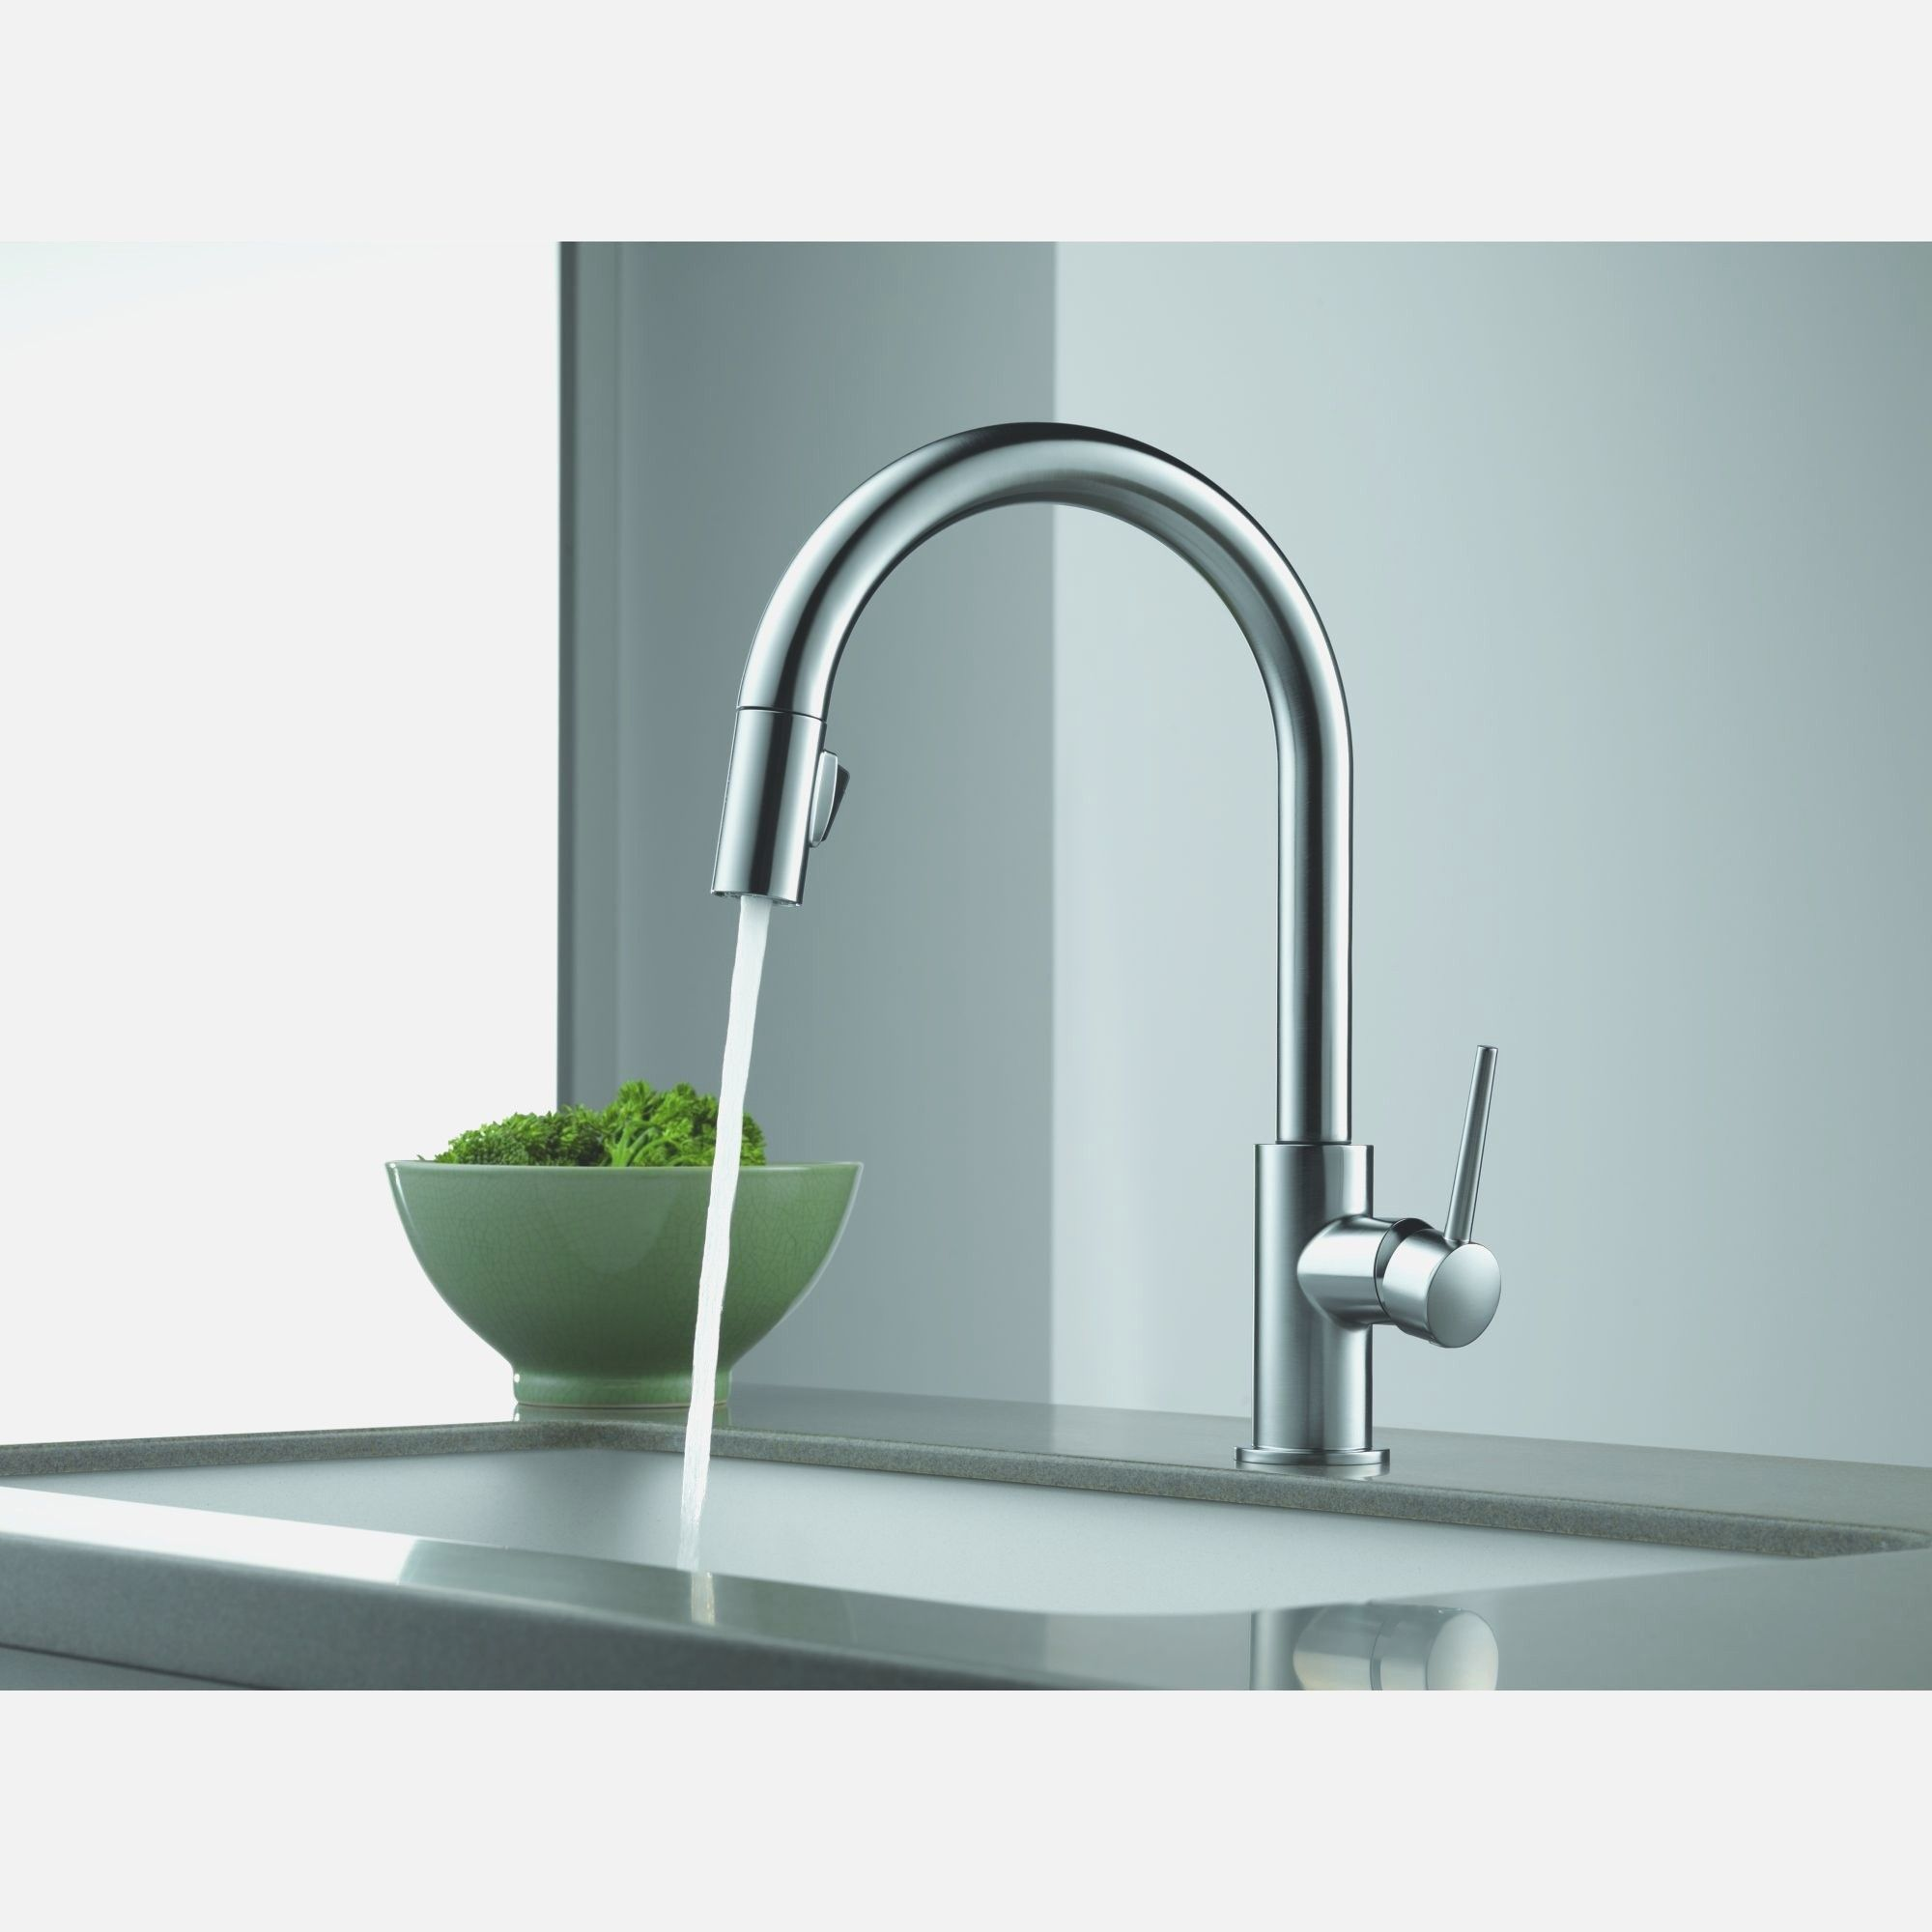 Kohler Kitchen Faucets Home Depot Easy To Do Backsplash Faucet Artifacts Replacement Parts